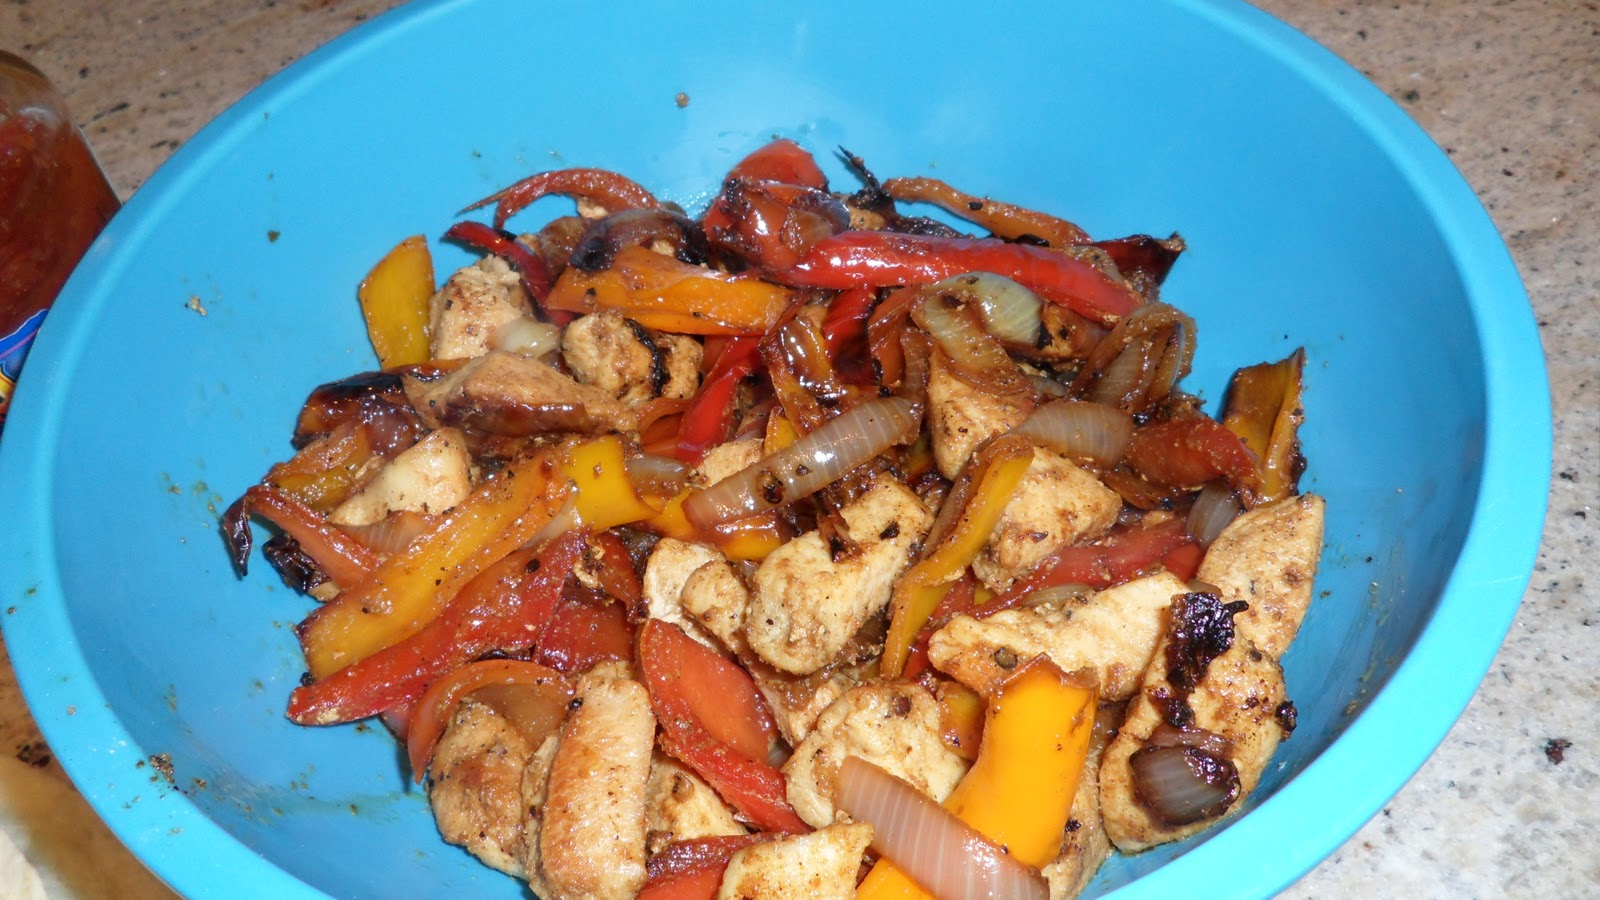 Random acts of food sizzling chicken fajitas there are plenty of fajita recipes that you can find online but i like this one from paula deen on food network it is straight forward and to the point forumfinder Image collections